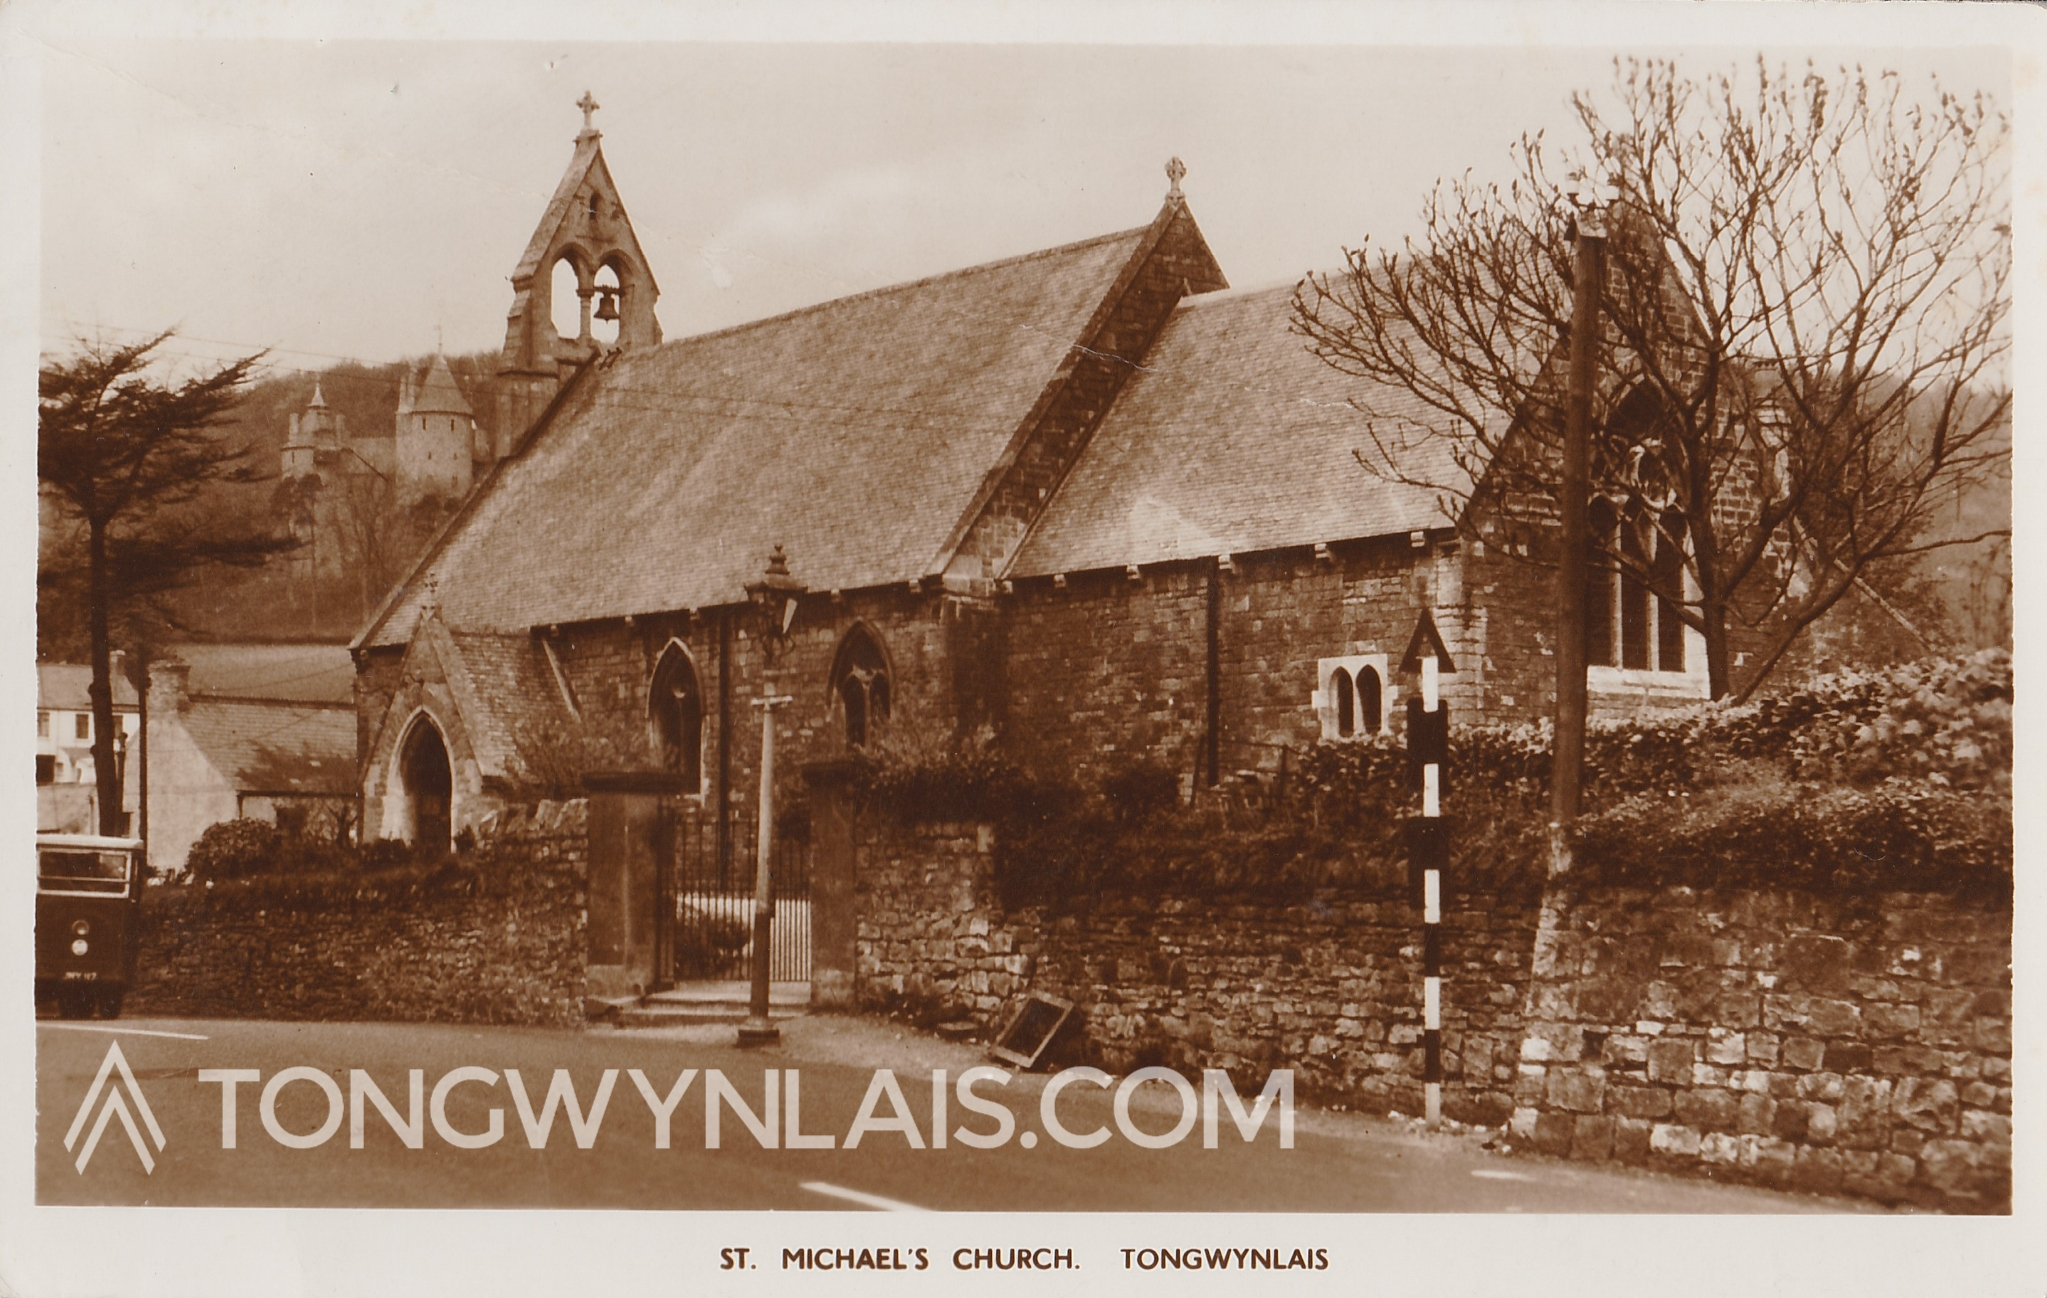 Photo of St Michael's Church on an old postcard